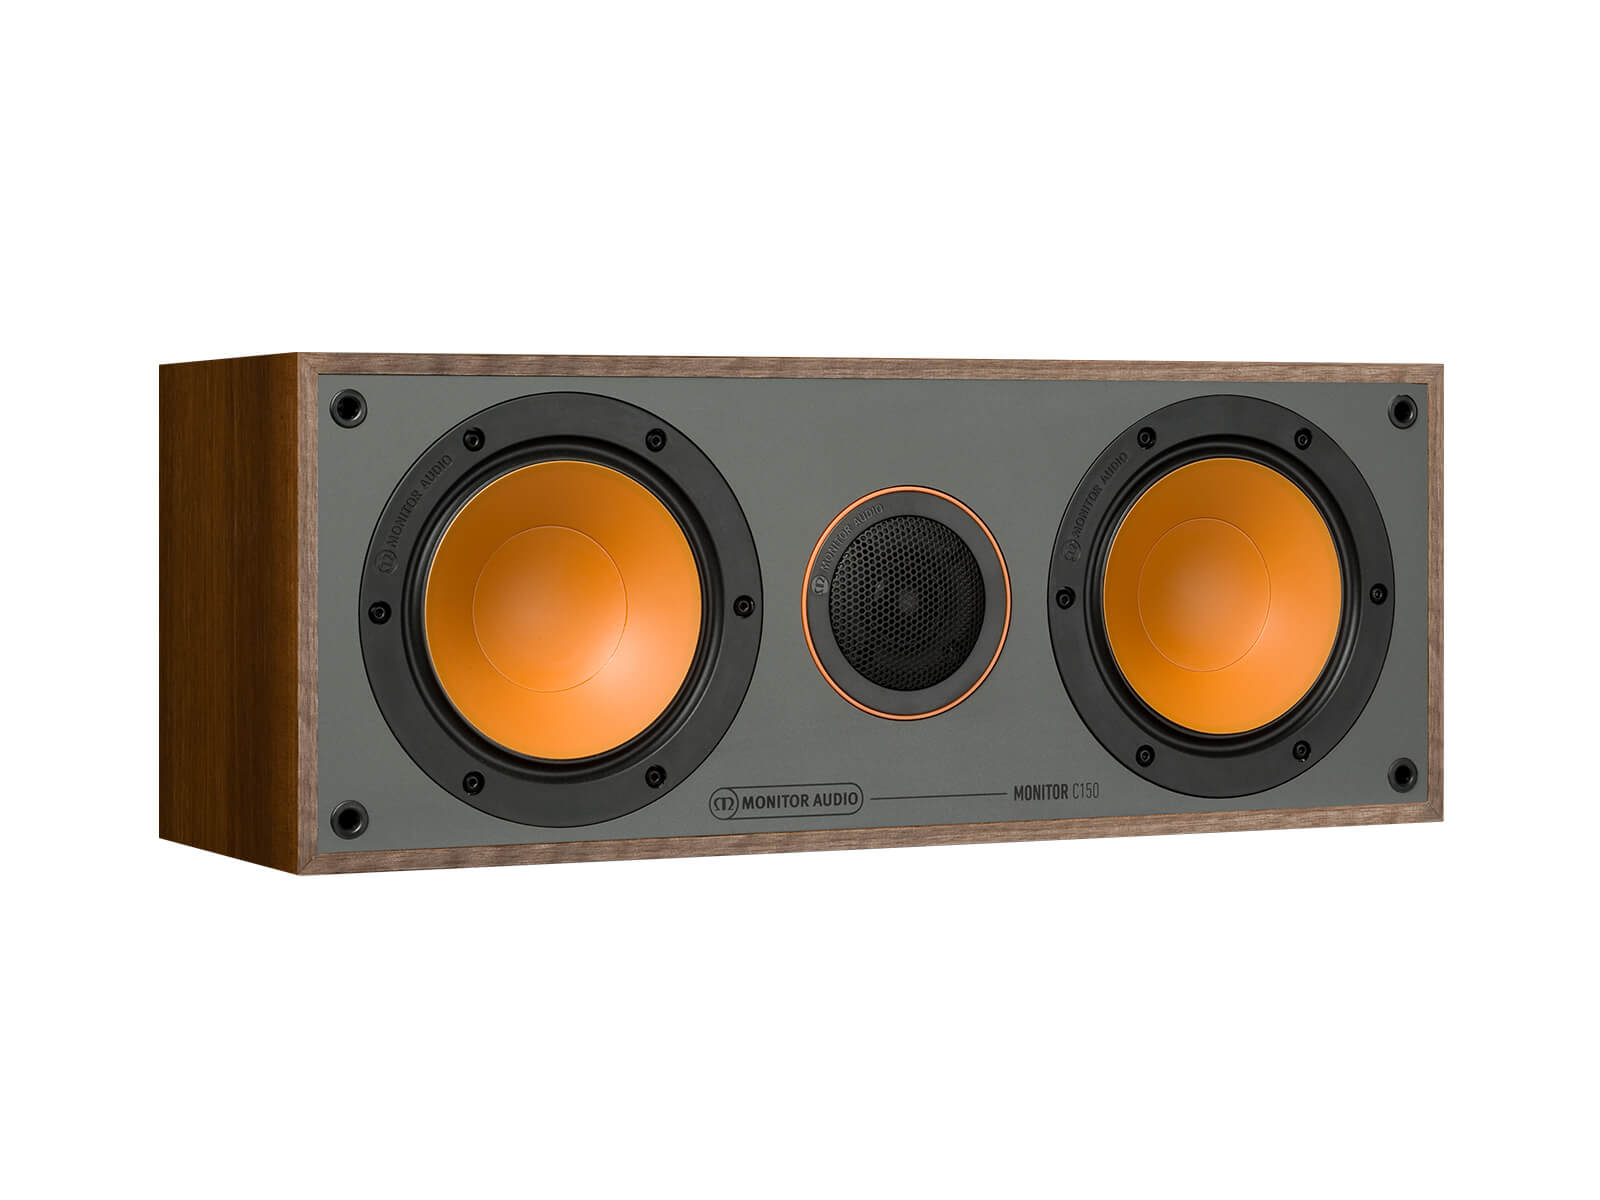 Monitor C150, grille-less centre channel speakers, with a walnut vinyl finish.